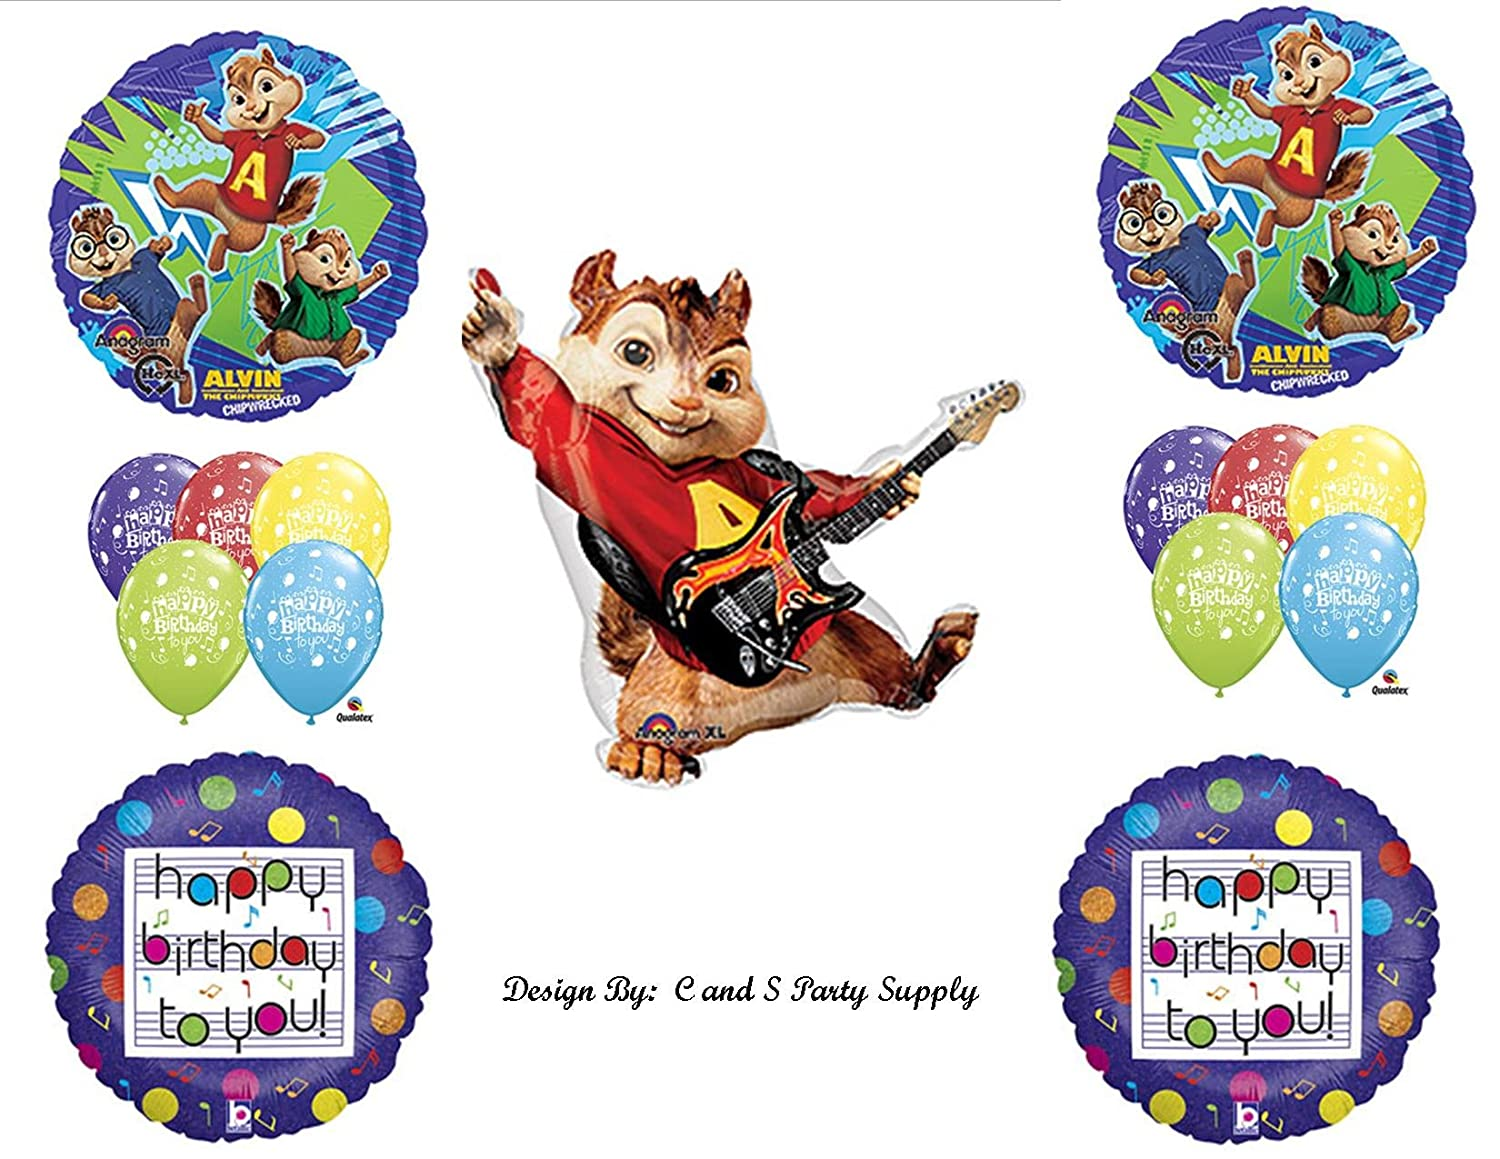 Happy Birthday Alvin Chipmunks Song Alvin And The Chipmunks Happy